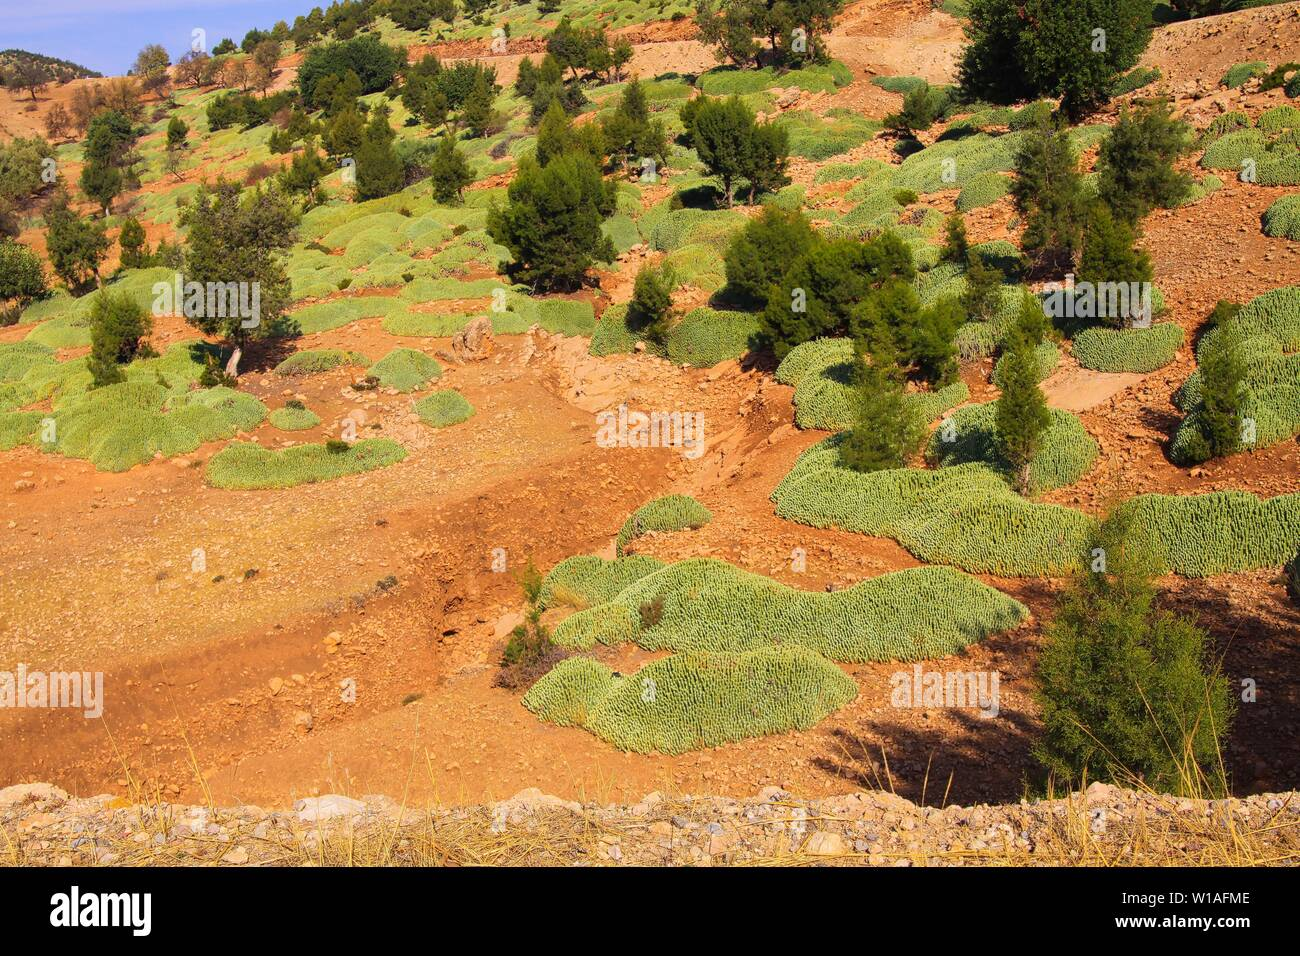 Conifer trees and green moss on red dry ground against blue sky - Ourika valley, Morocco - Stock Image